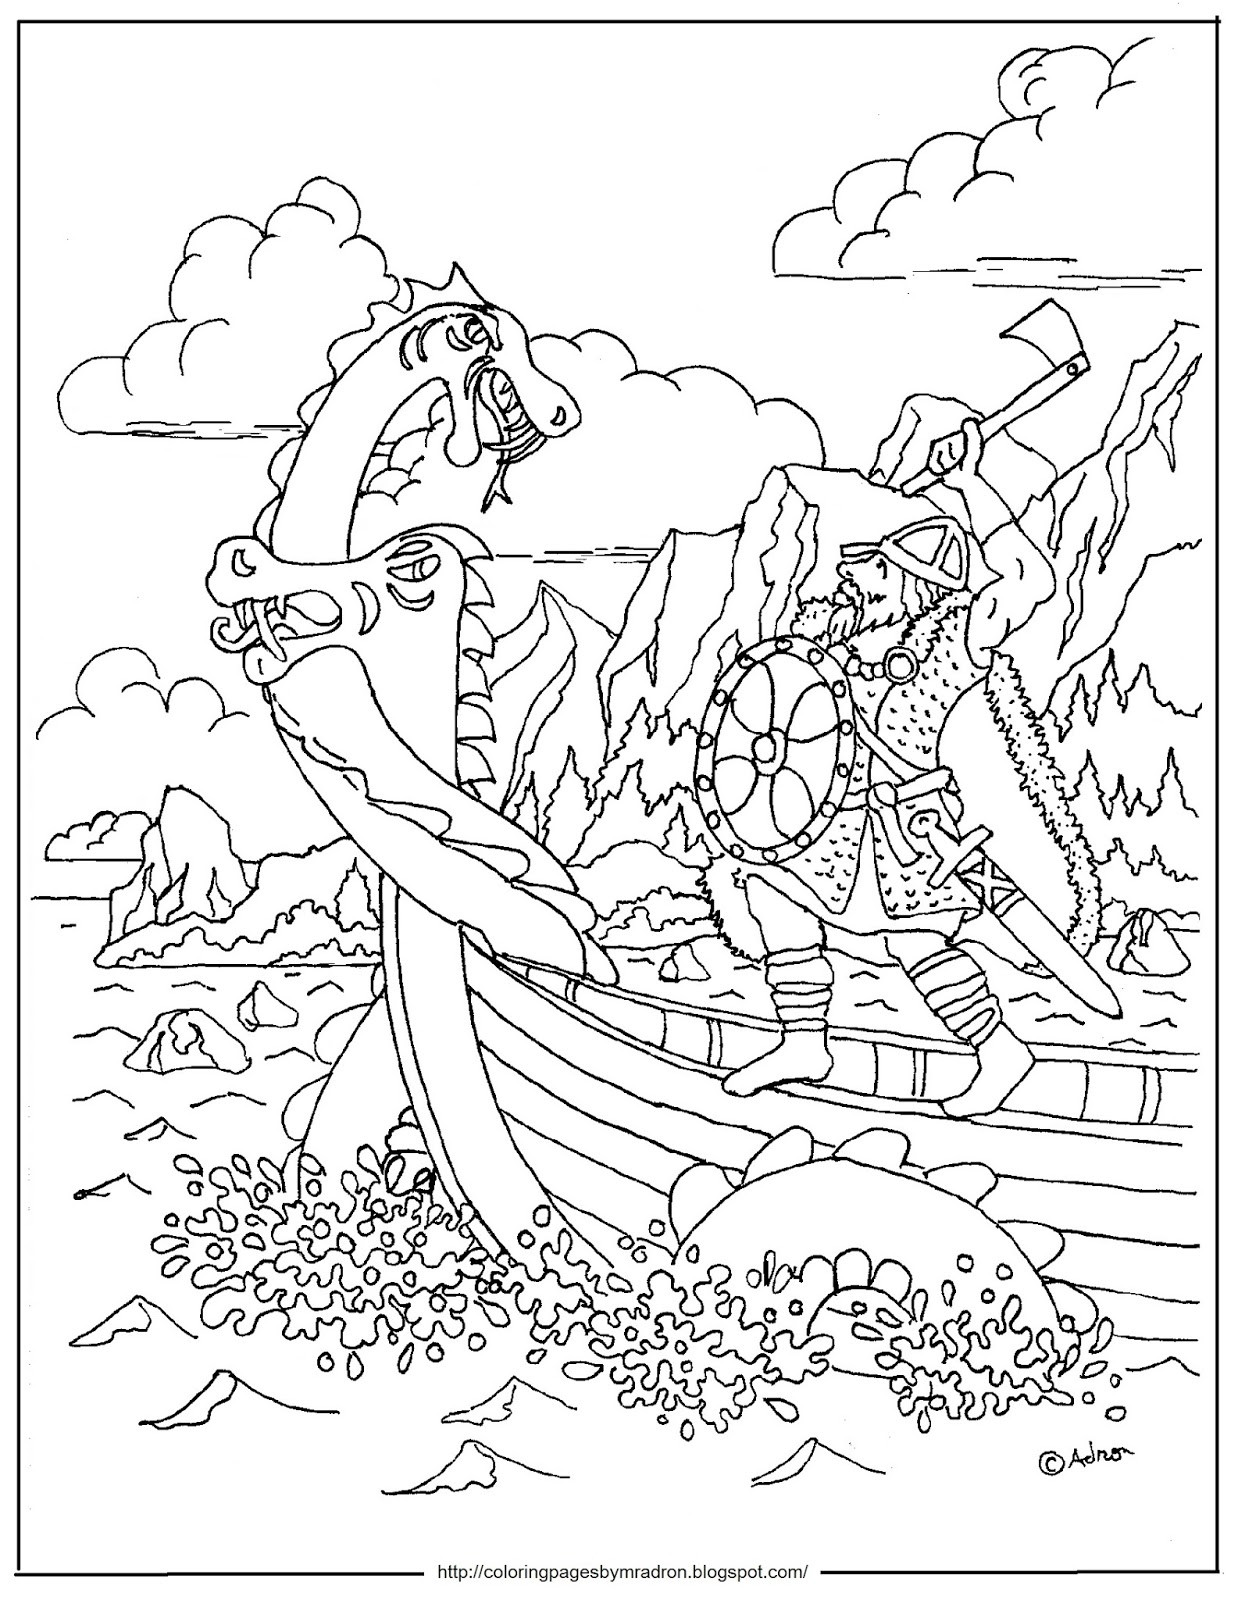 sea monster coloring pages - photo#39